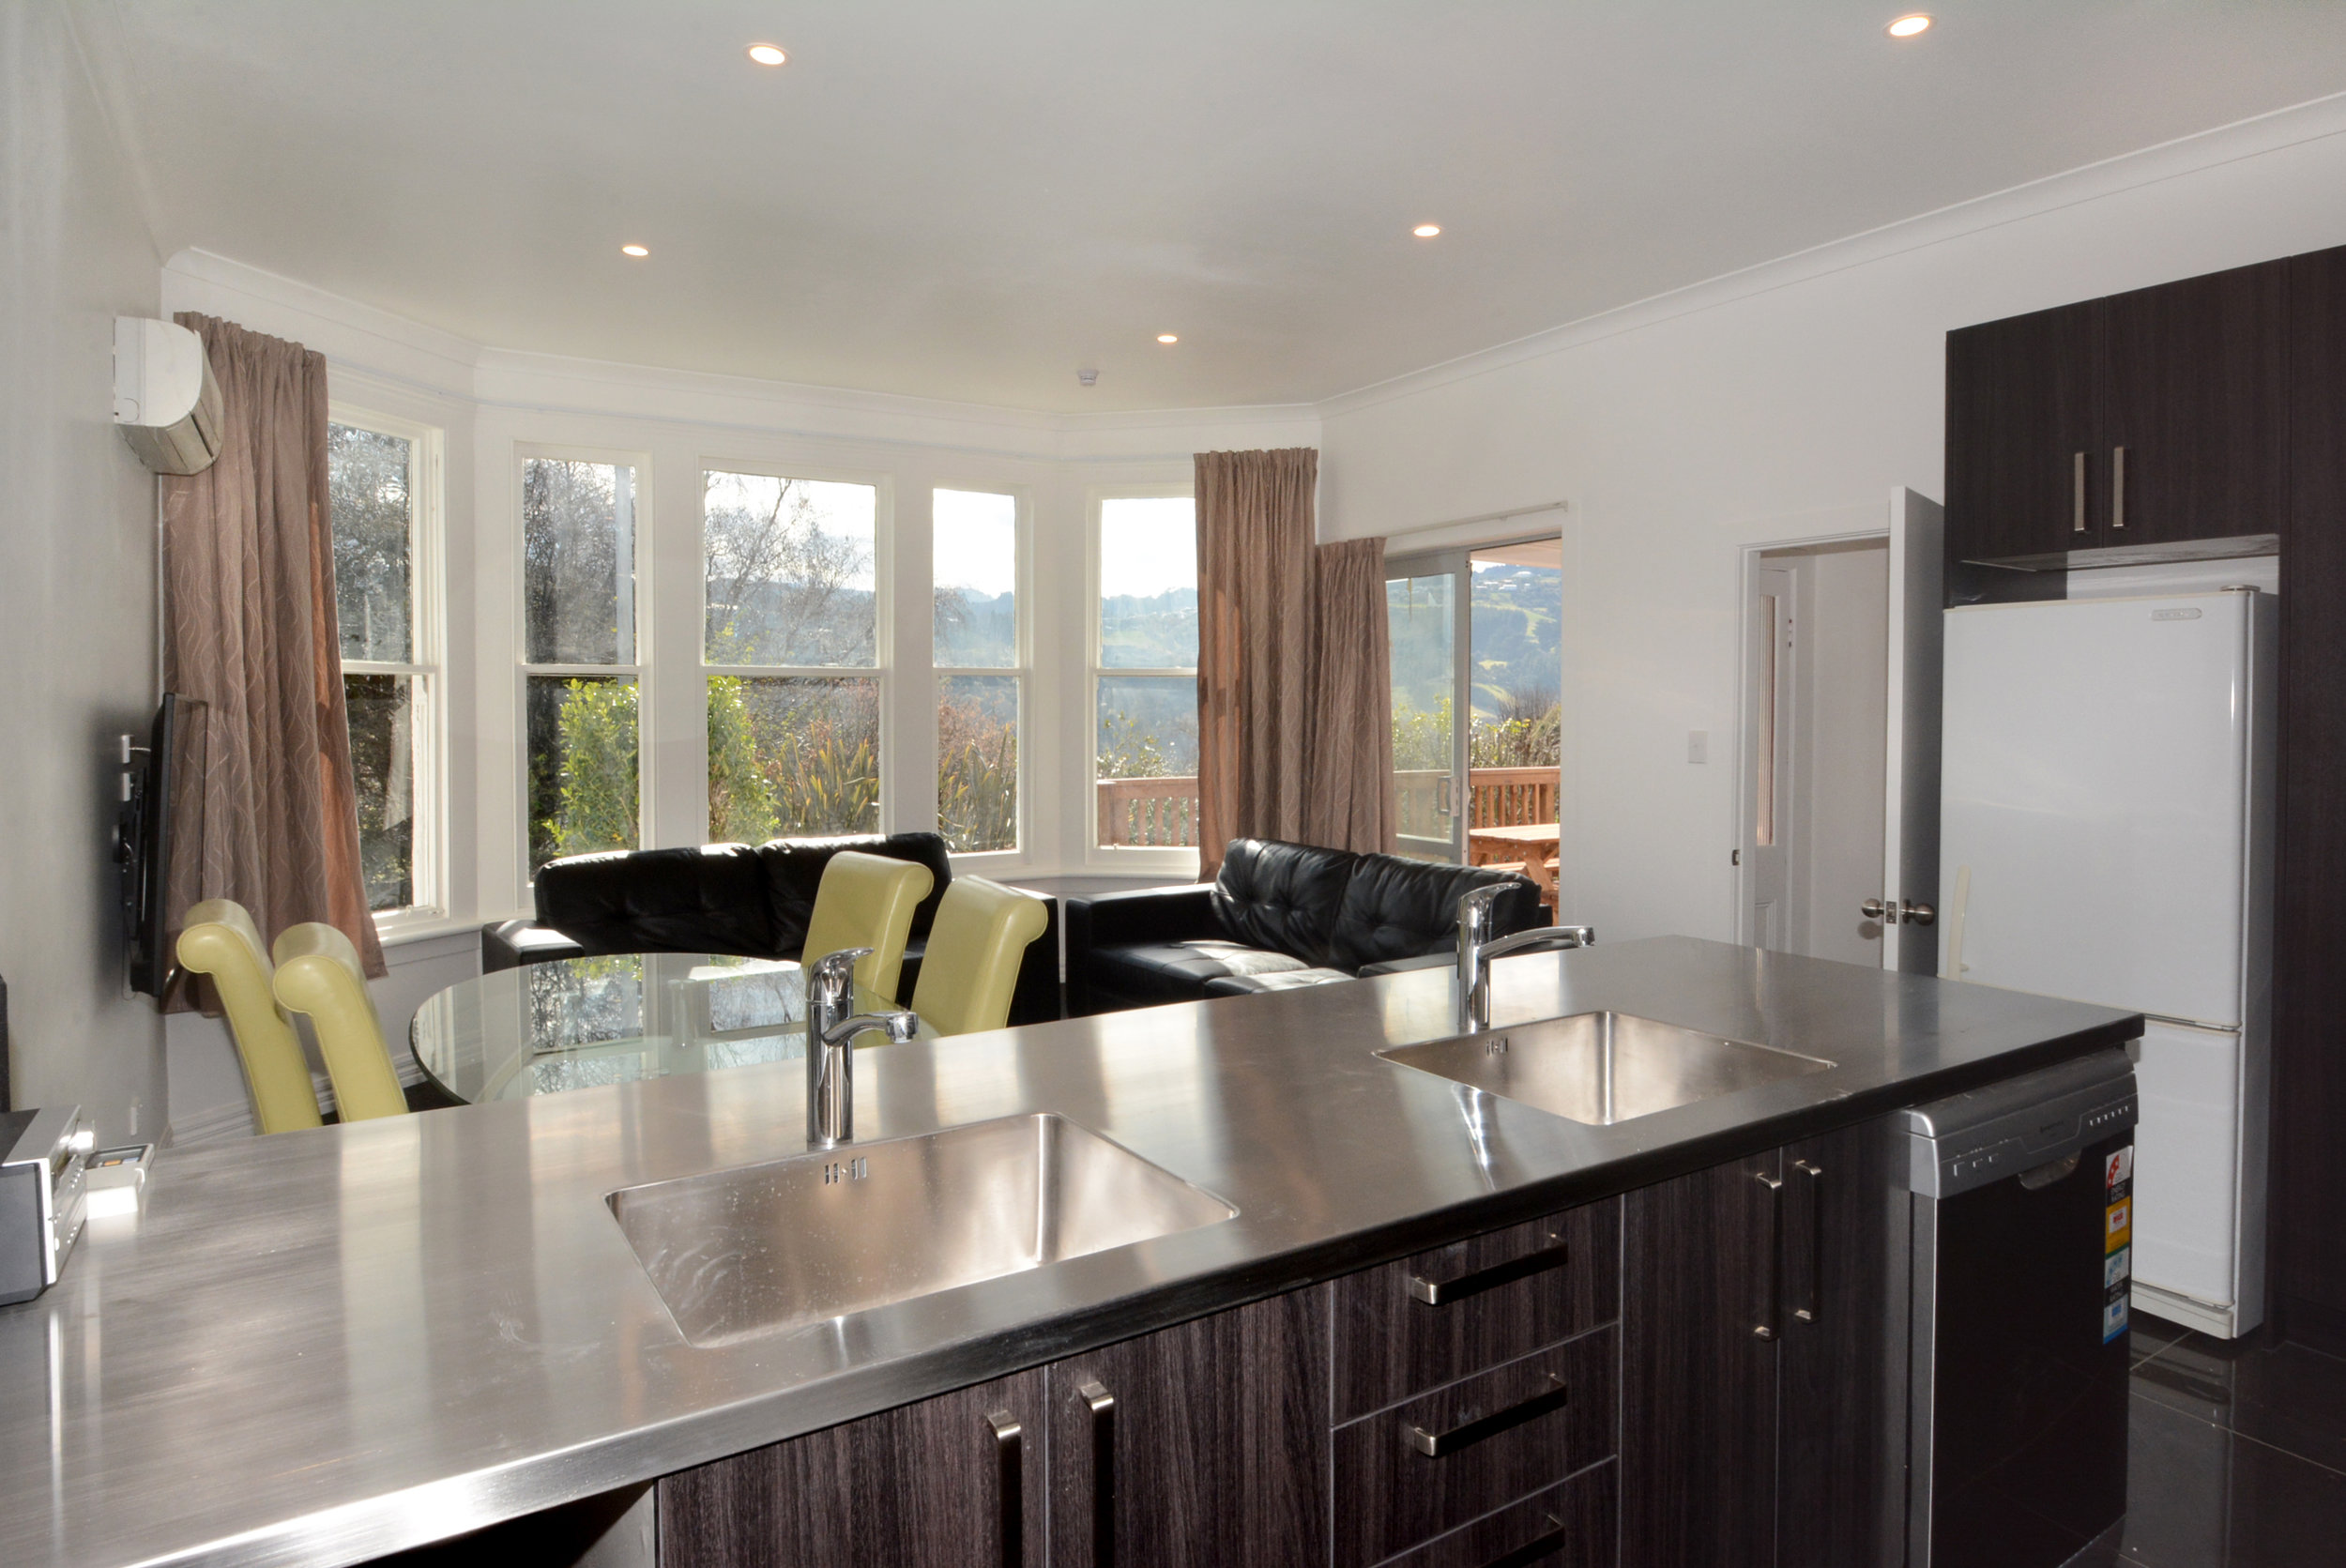 Executive area shared kitchen and lounge